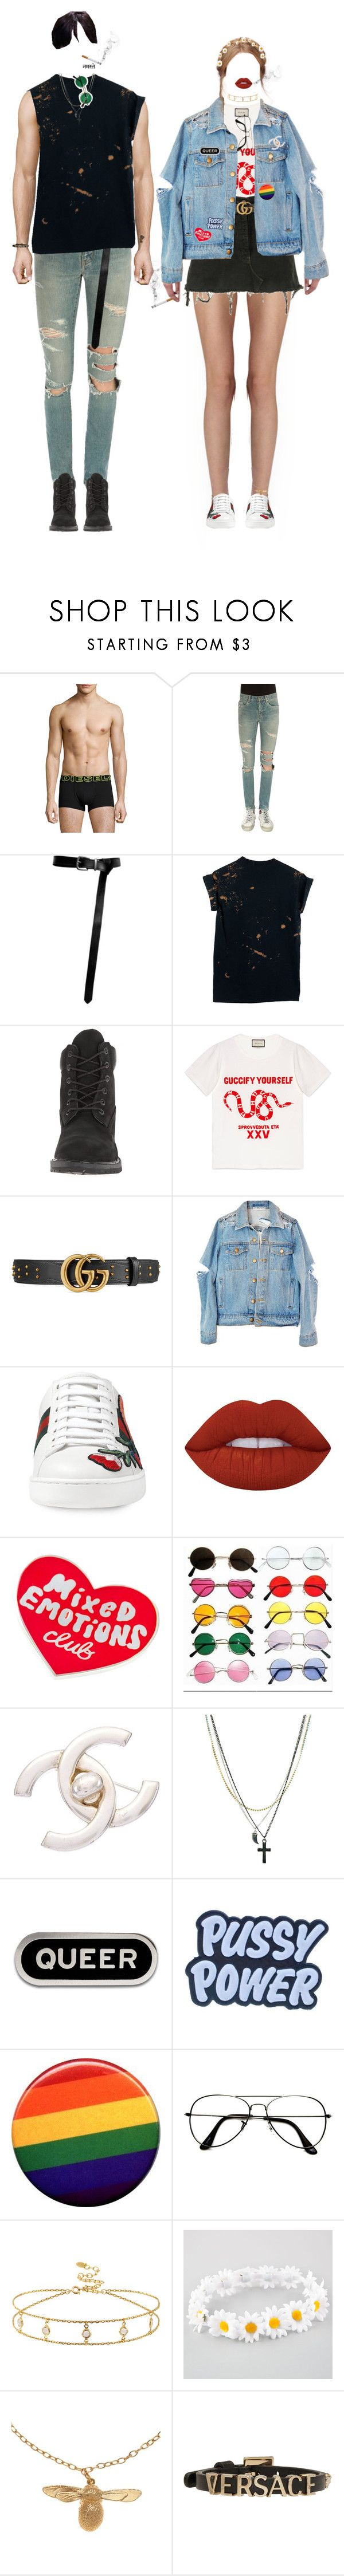 """-bf / gf look at a festival"" by salt-sugar ❤ liked on Polyvore featuring Diesel, Yves Saint Laurent, Timberland, Gucci, Levi's, High Heels Suicide, Lime Crime, Tuesday Bassen, Chanel and ASOS"